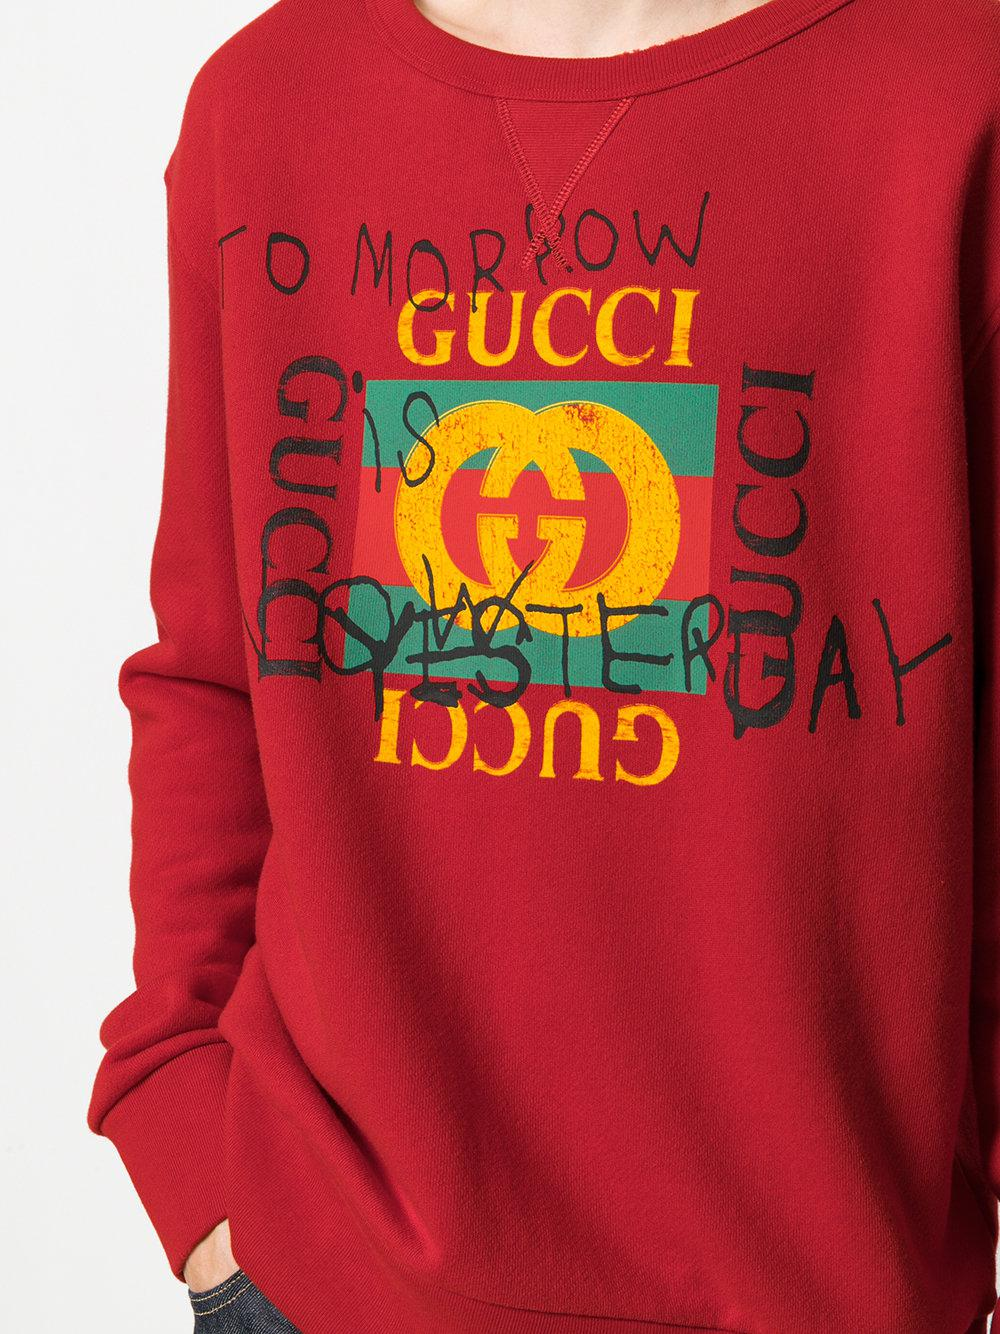 29b1fb6c9db6 Gucci Coco Capitán Logo Sweatshirt in Red for Men - Lyst